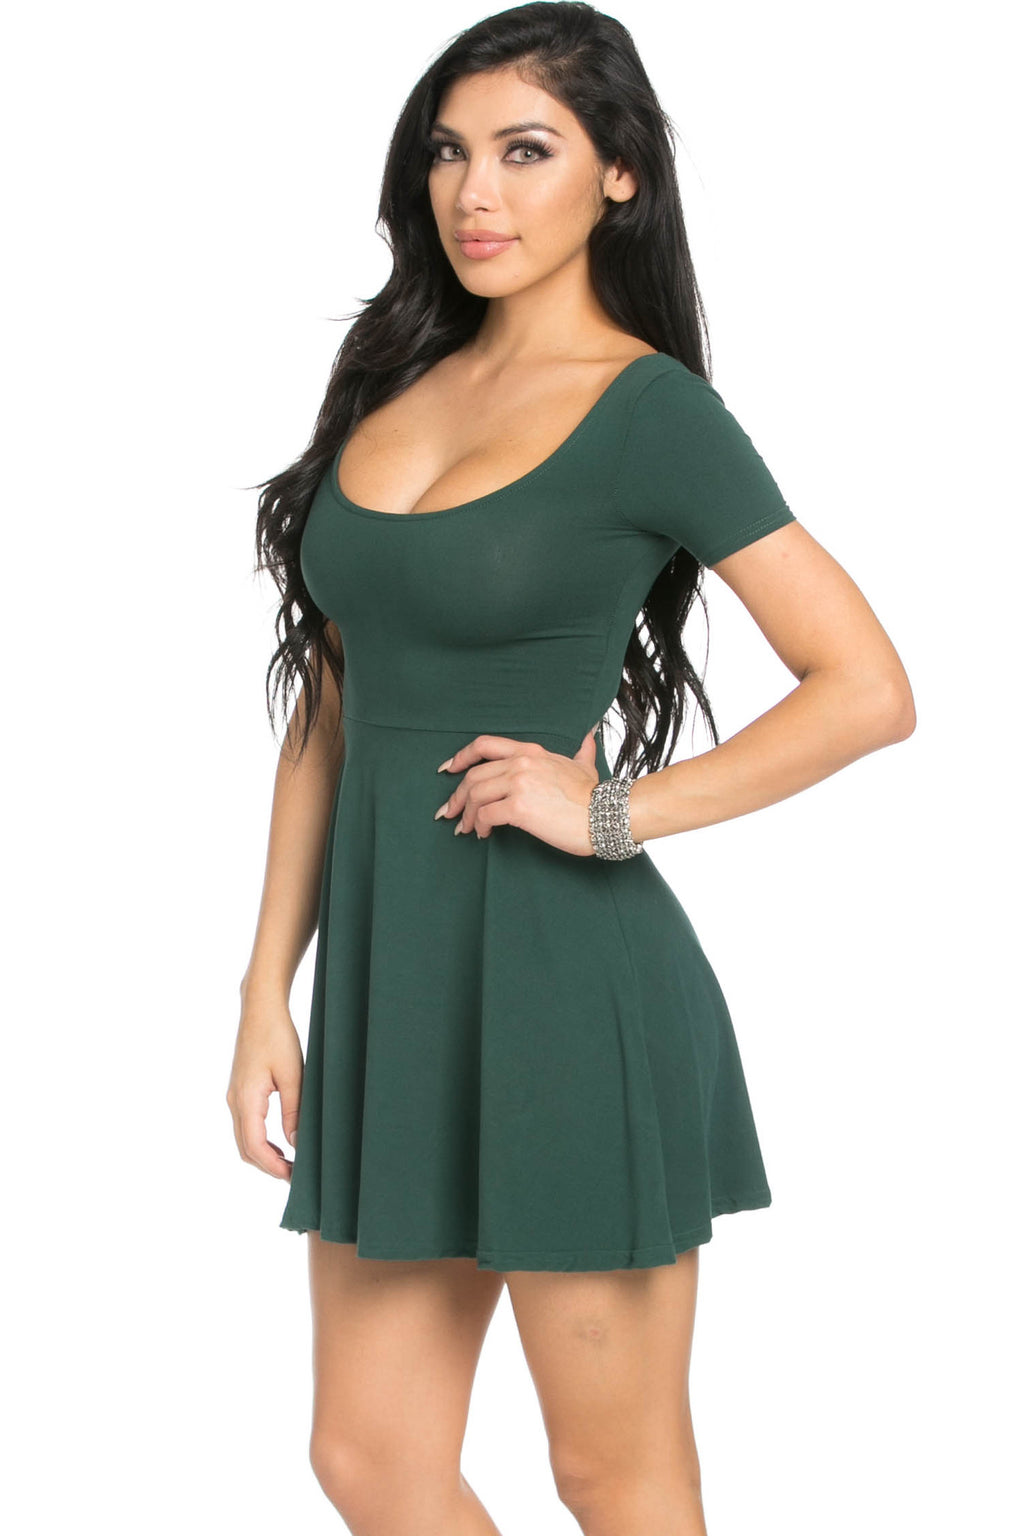 Micro Suede Green Mini Dress - Dresses - My Yuccie - 2